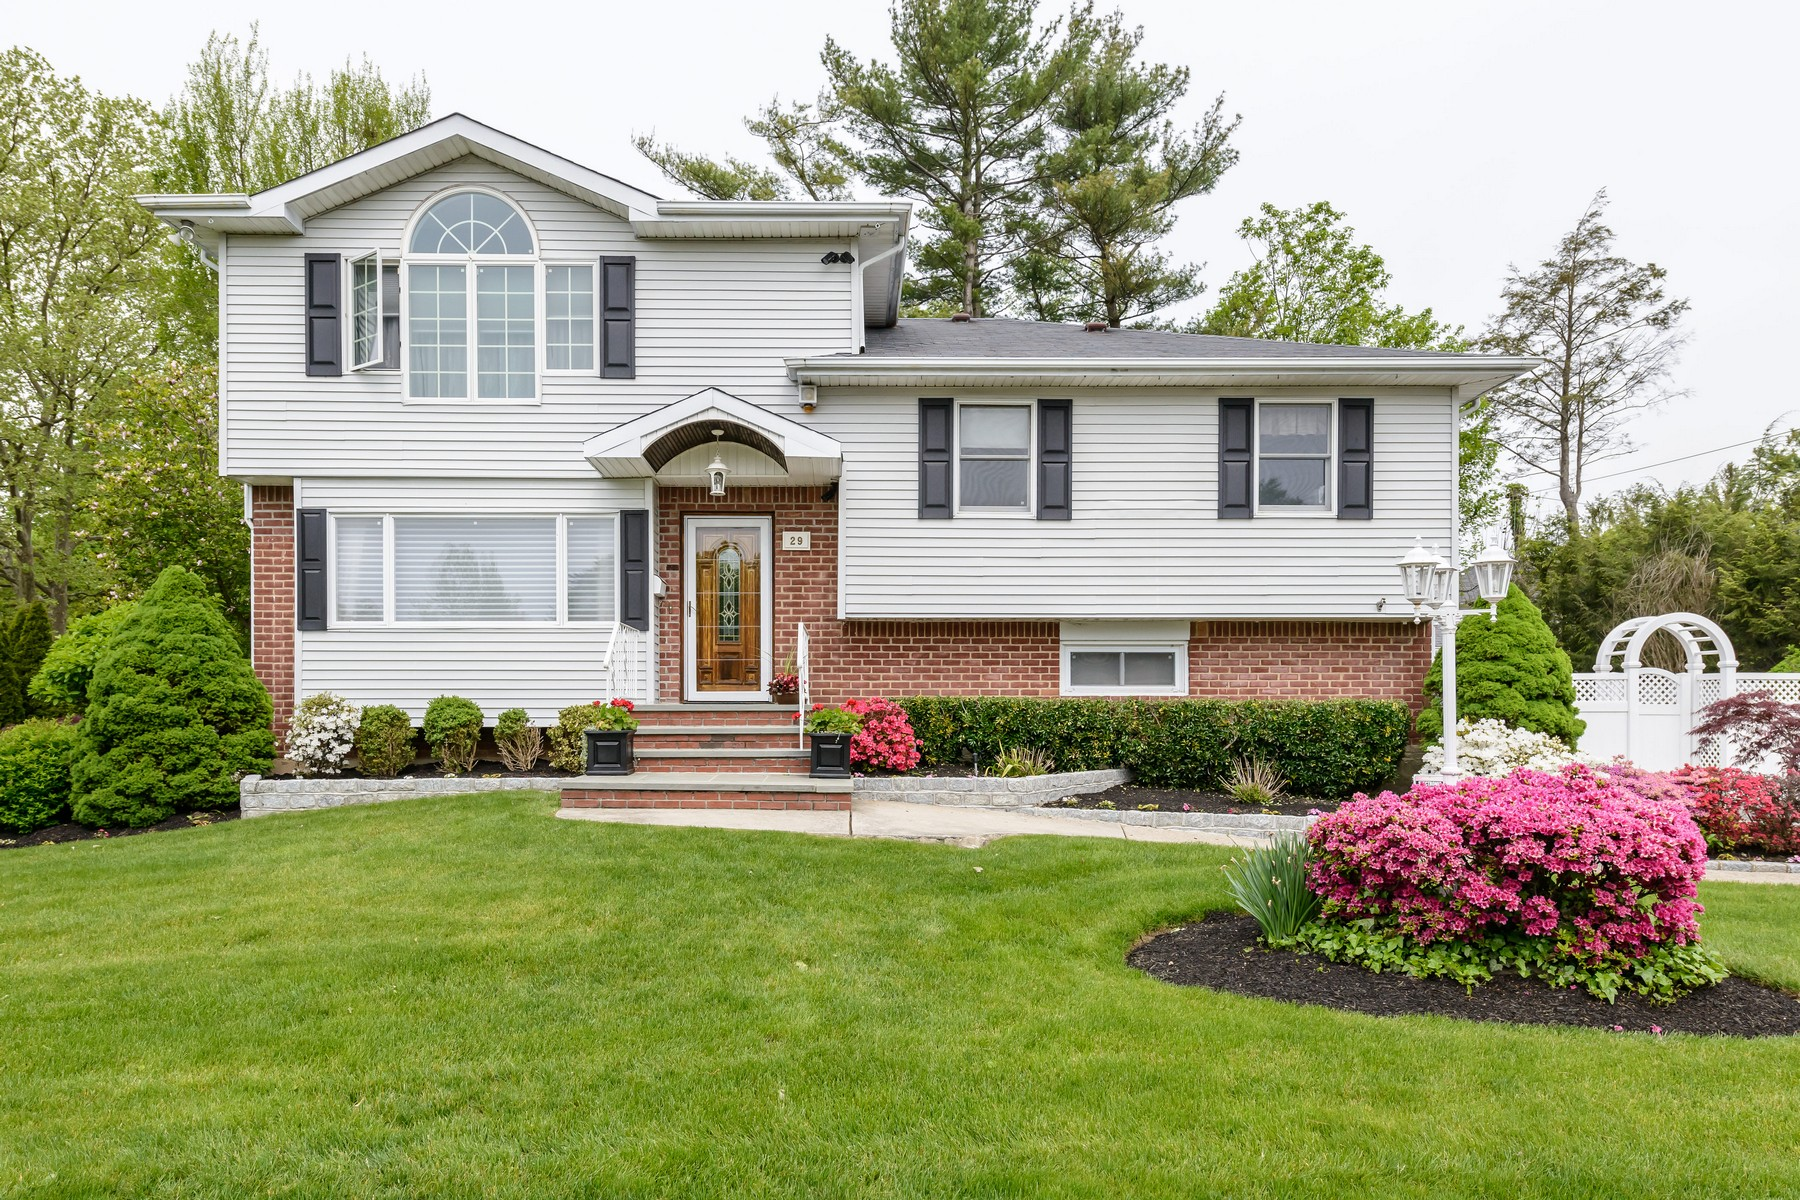 Single Family Home for Sale at Split 29 Azalea Dr Syosset, New York, 11791 United States